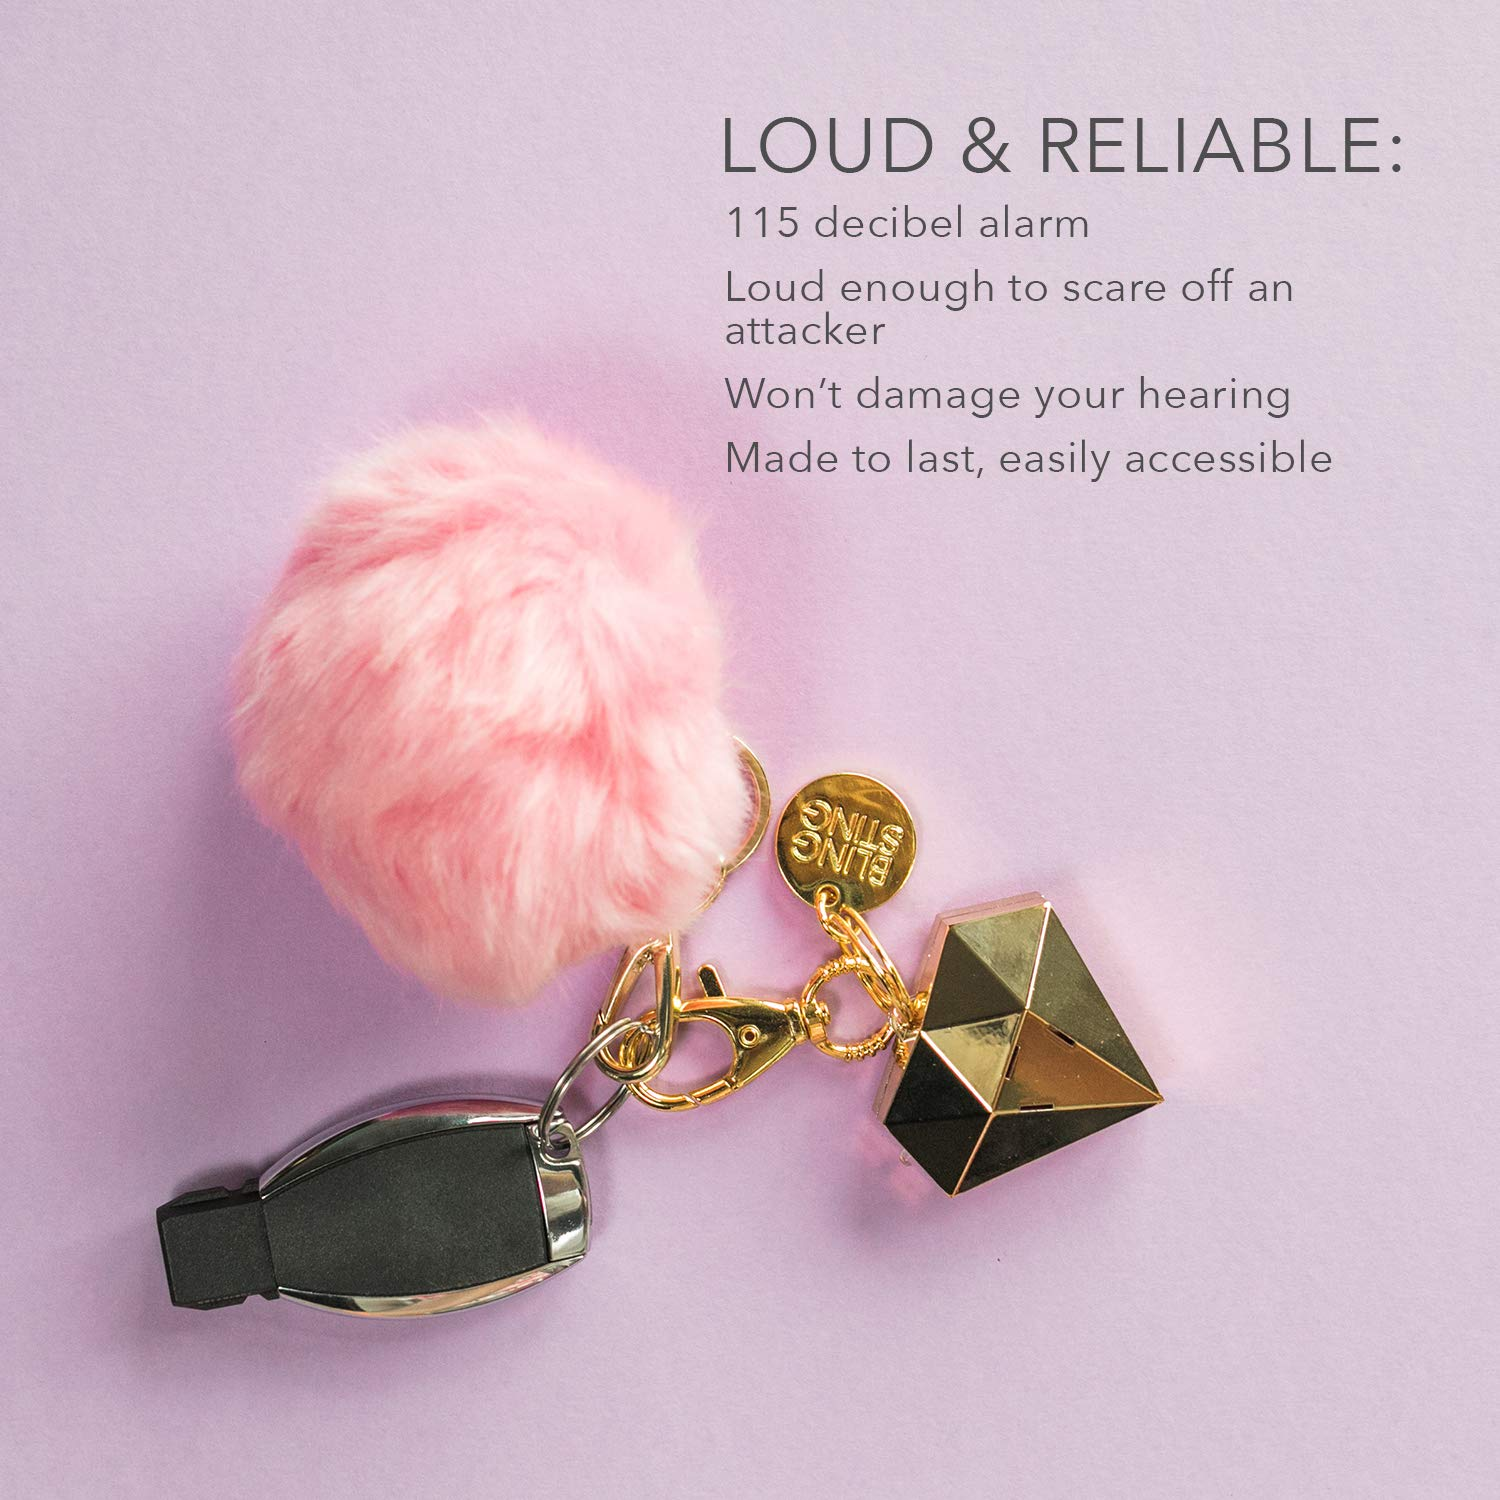 Personal Safety Alarm for Women - Ahh!-larm! Self-Defense Personal Panic Alarm Keychain for Women with LED Safety Light and Clip, Gold Gemstone Diamond by BLINGSTING (Image #5)